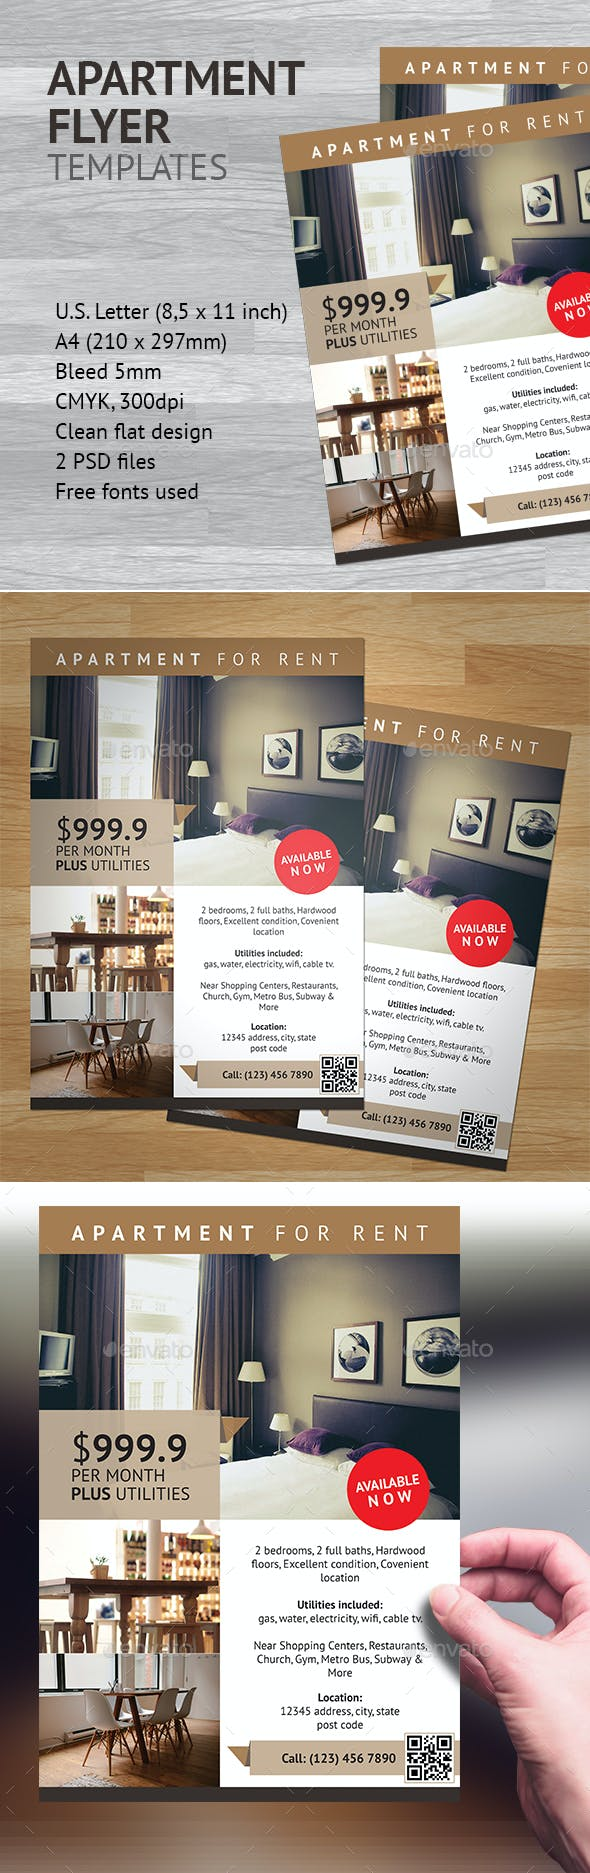 apartment flyer template 1 by heriwibowo graphicriver